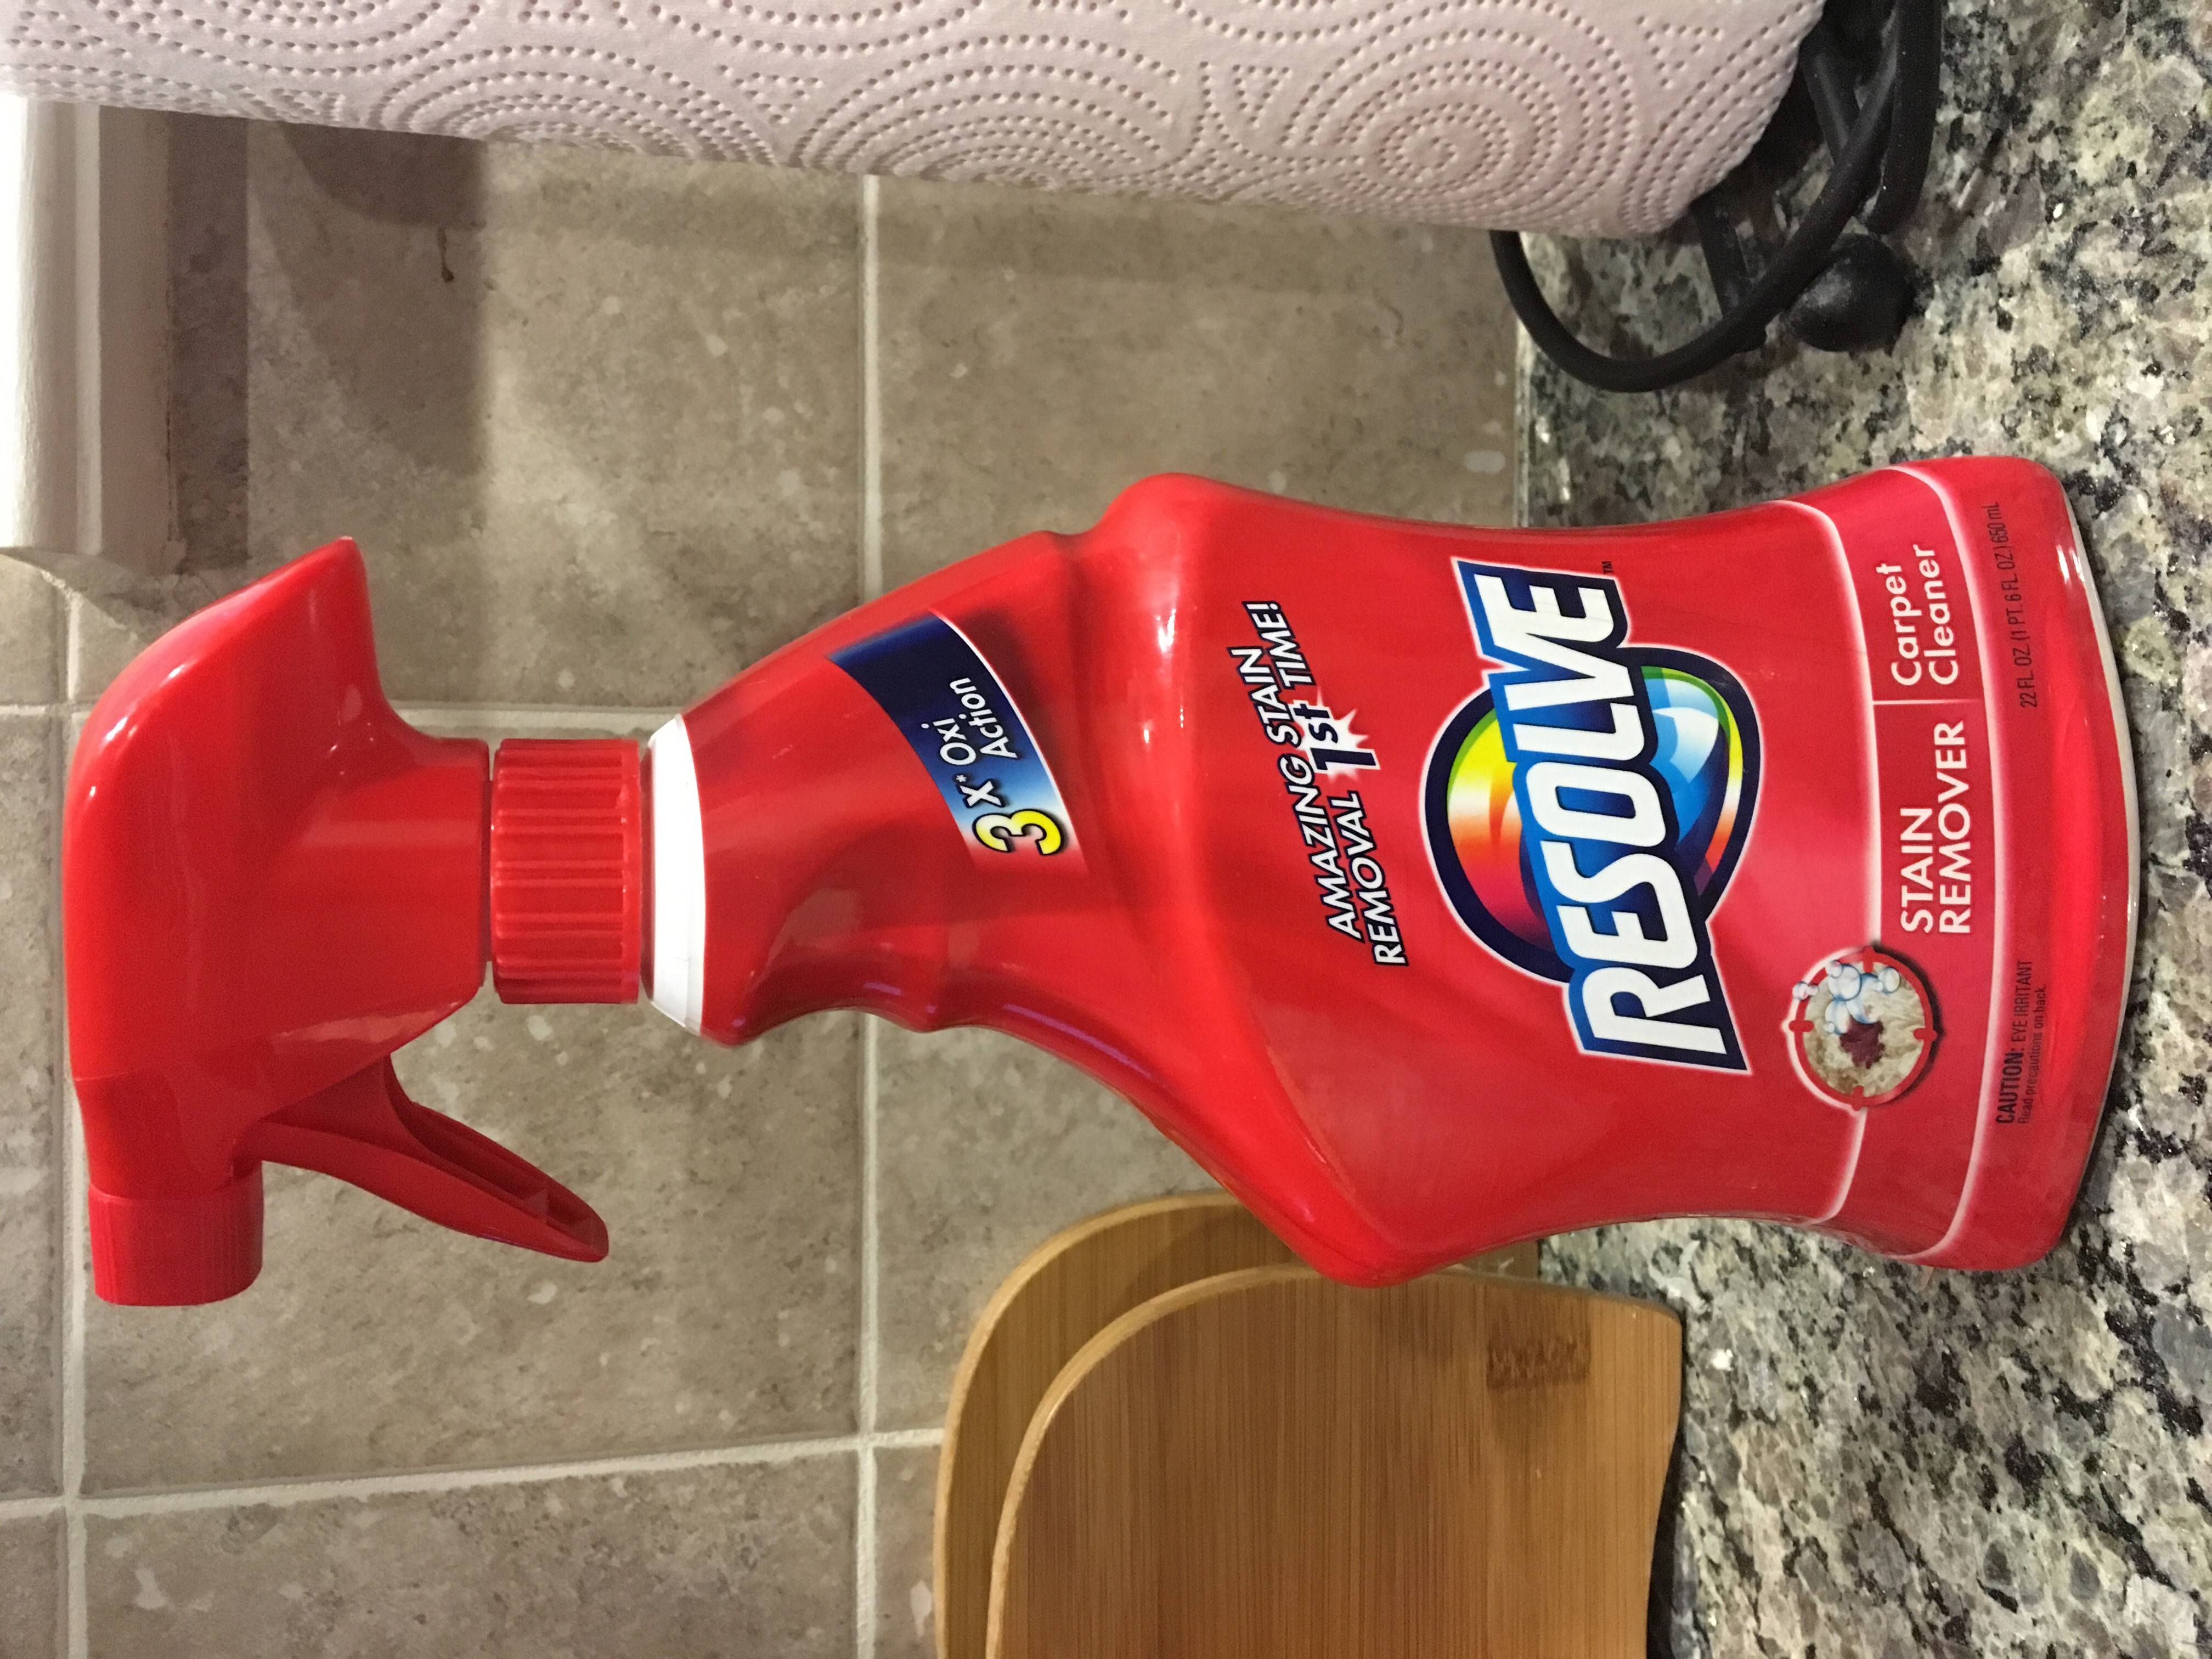 Resolve Stain Remover Carpet Cleaner 22 oz uploaded by Stephanie S.